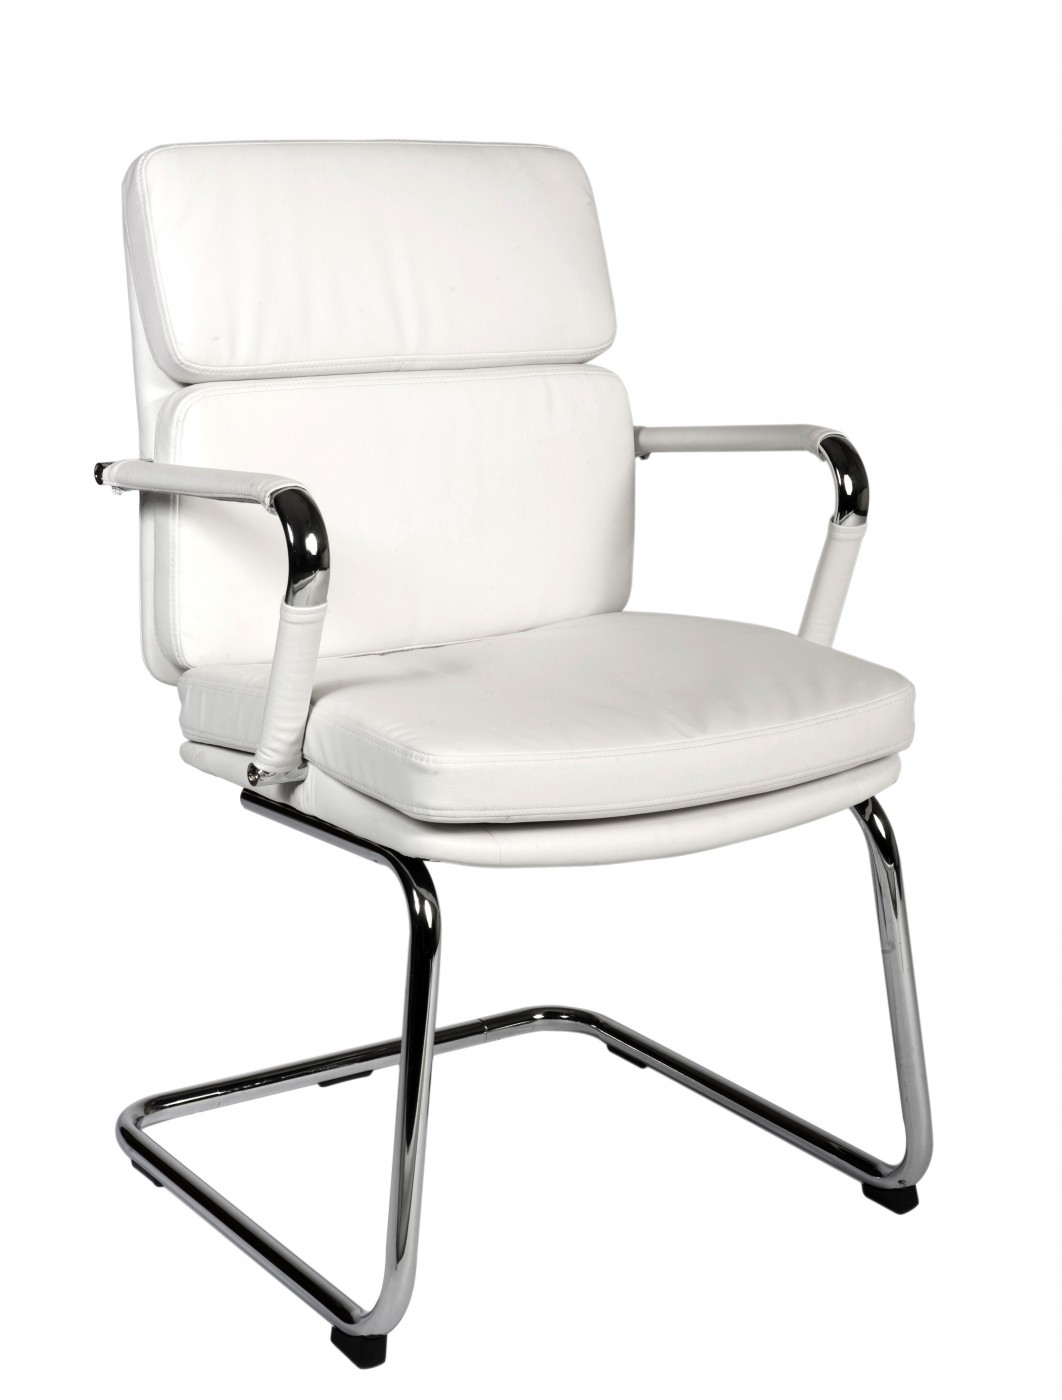 office visitor chairs high back wing chair recliner visitors h9610l 3 121 furniture